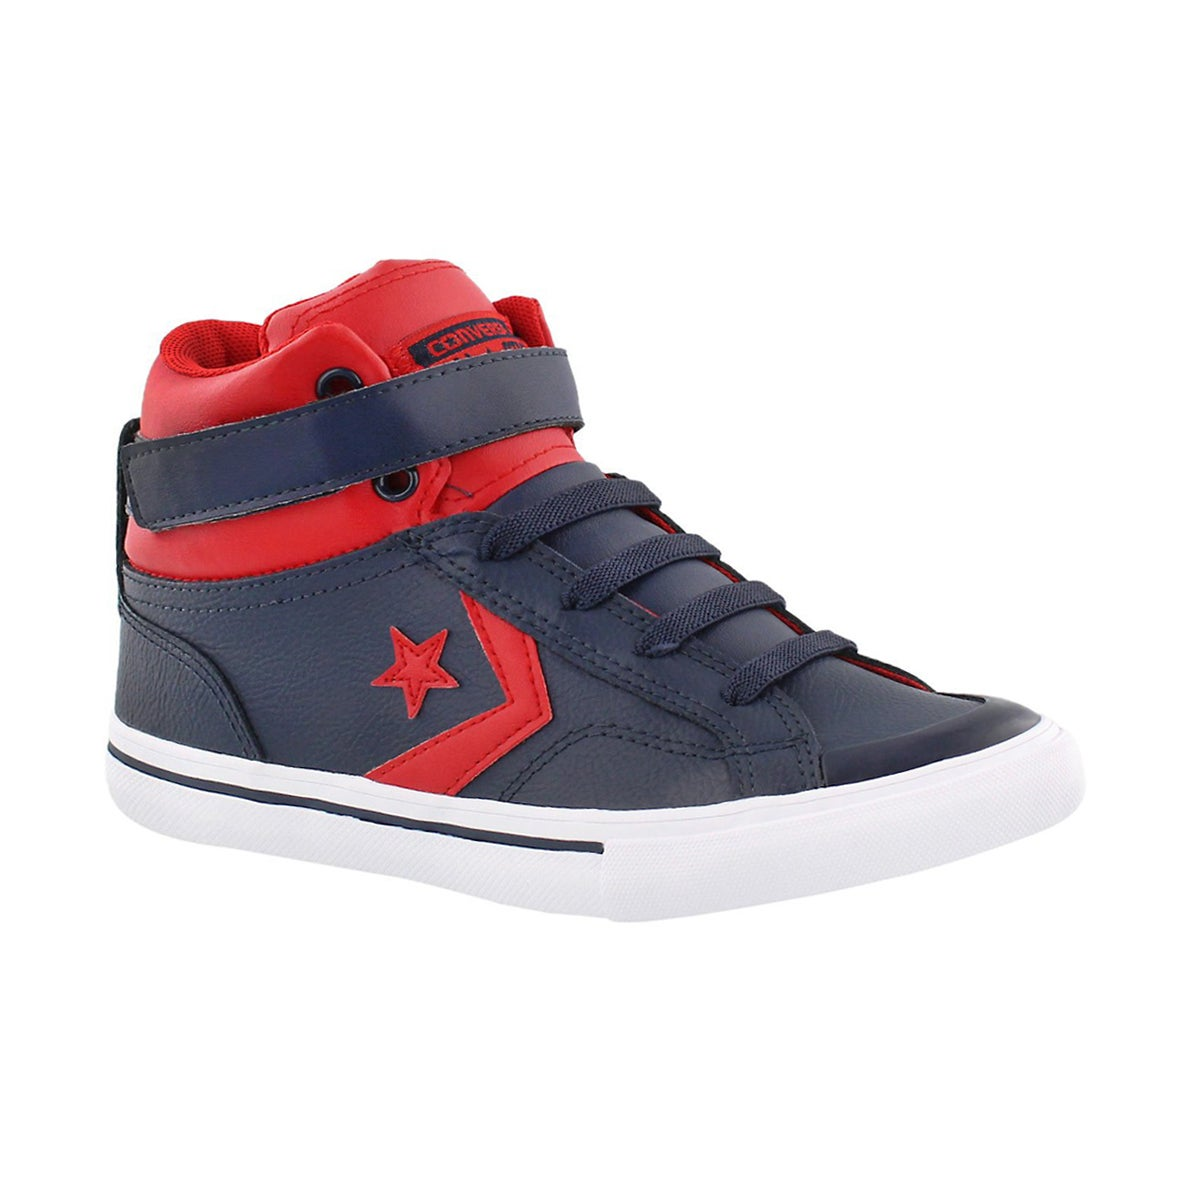 Converse Shoes For Big Boys